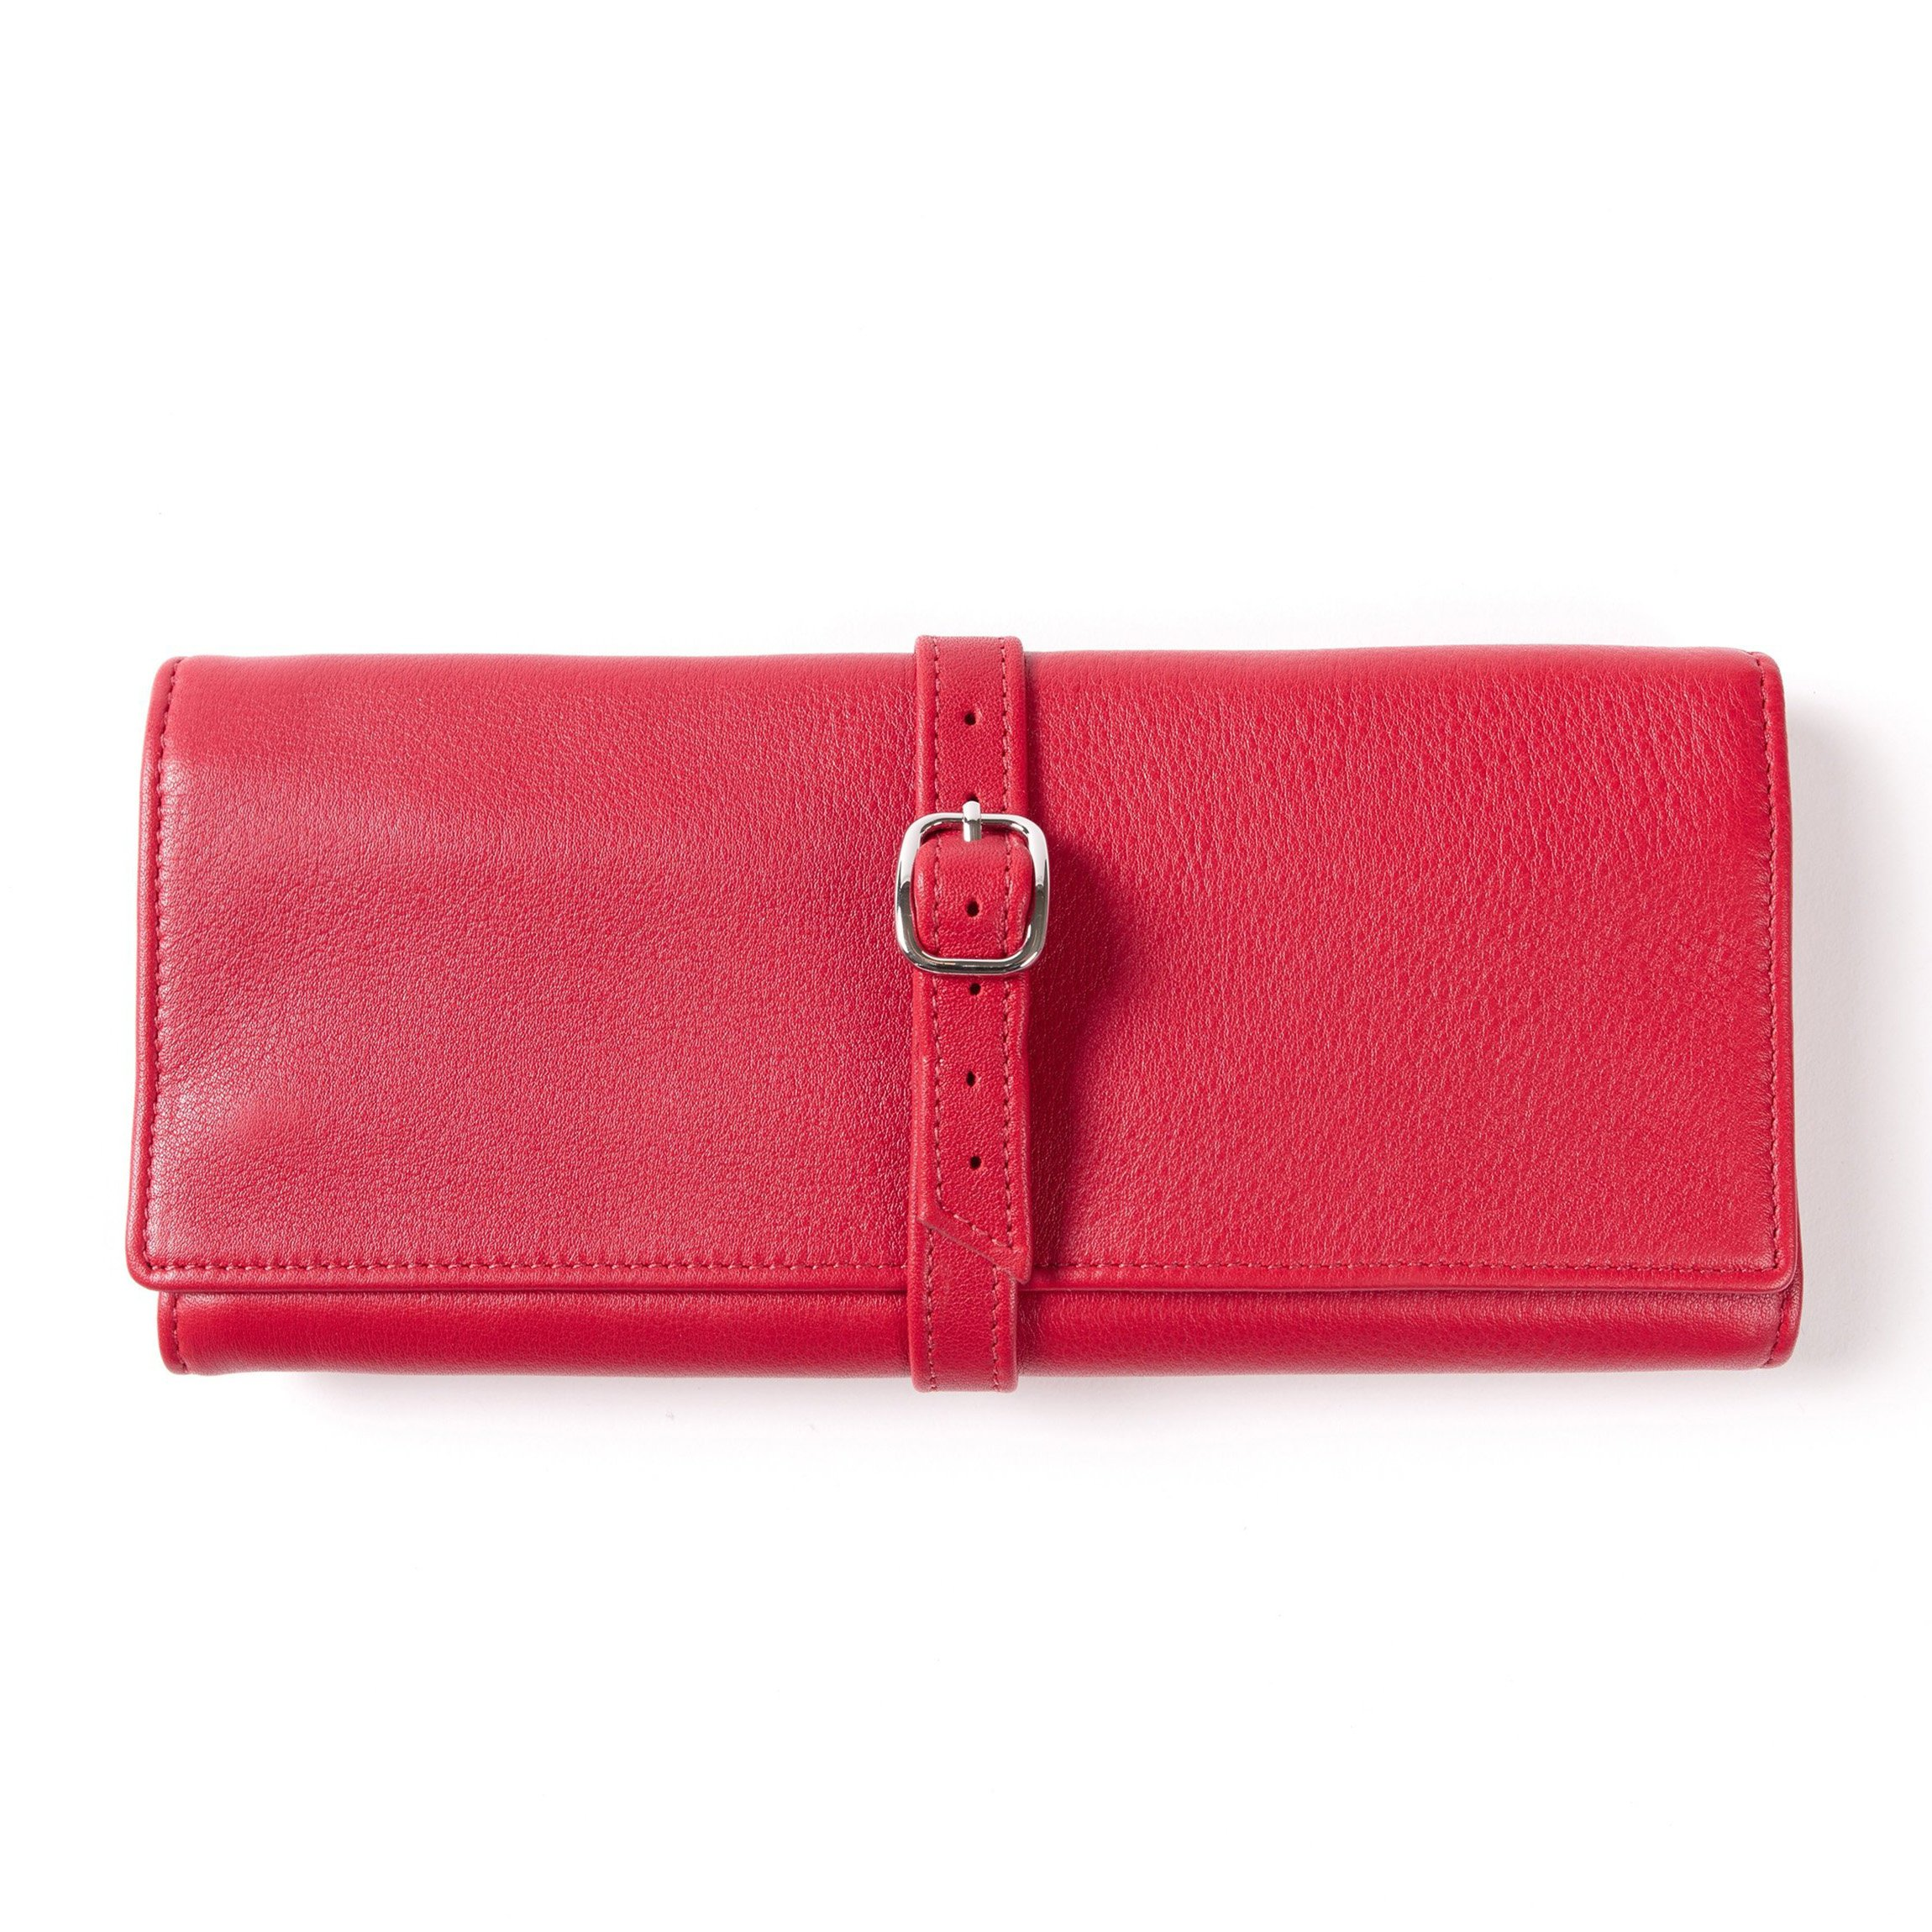 Buckled Jewelry Roll - Full Grain Leather Leather - Red Apple (red)